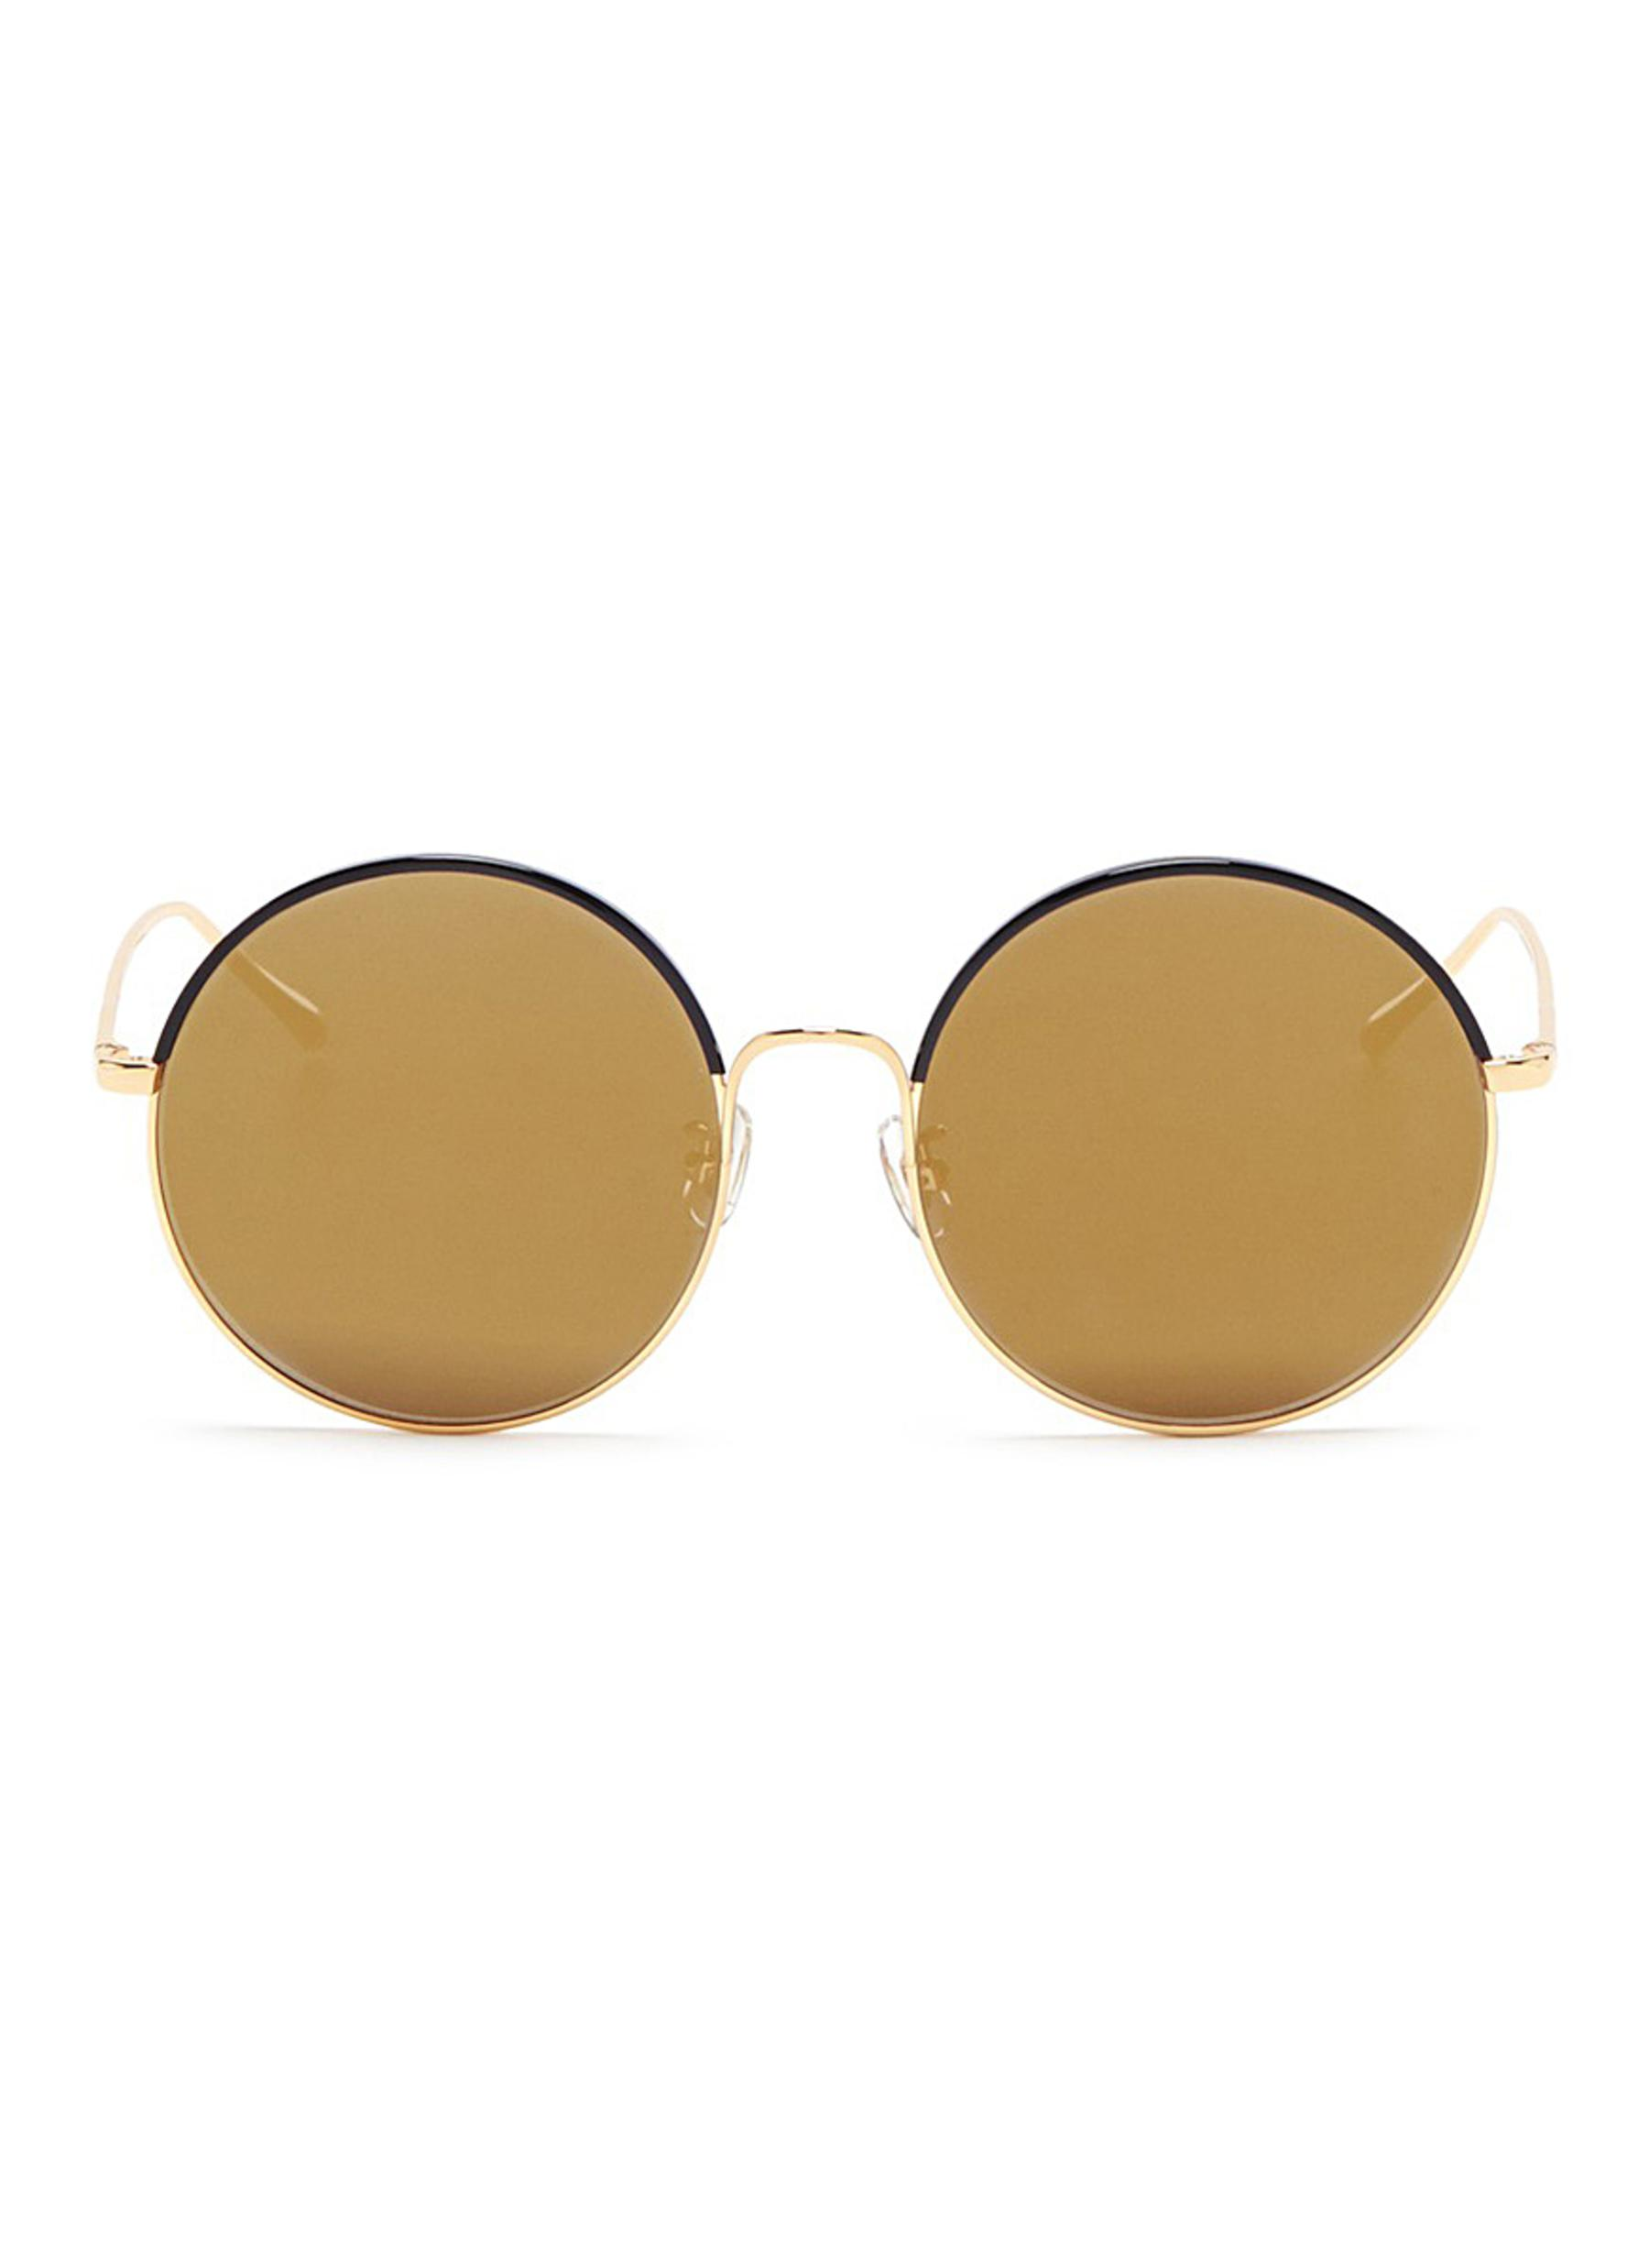 Cantabile coated rim round metal mirror sunglasses by Stephane + Christian